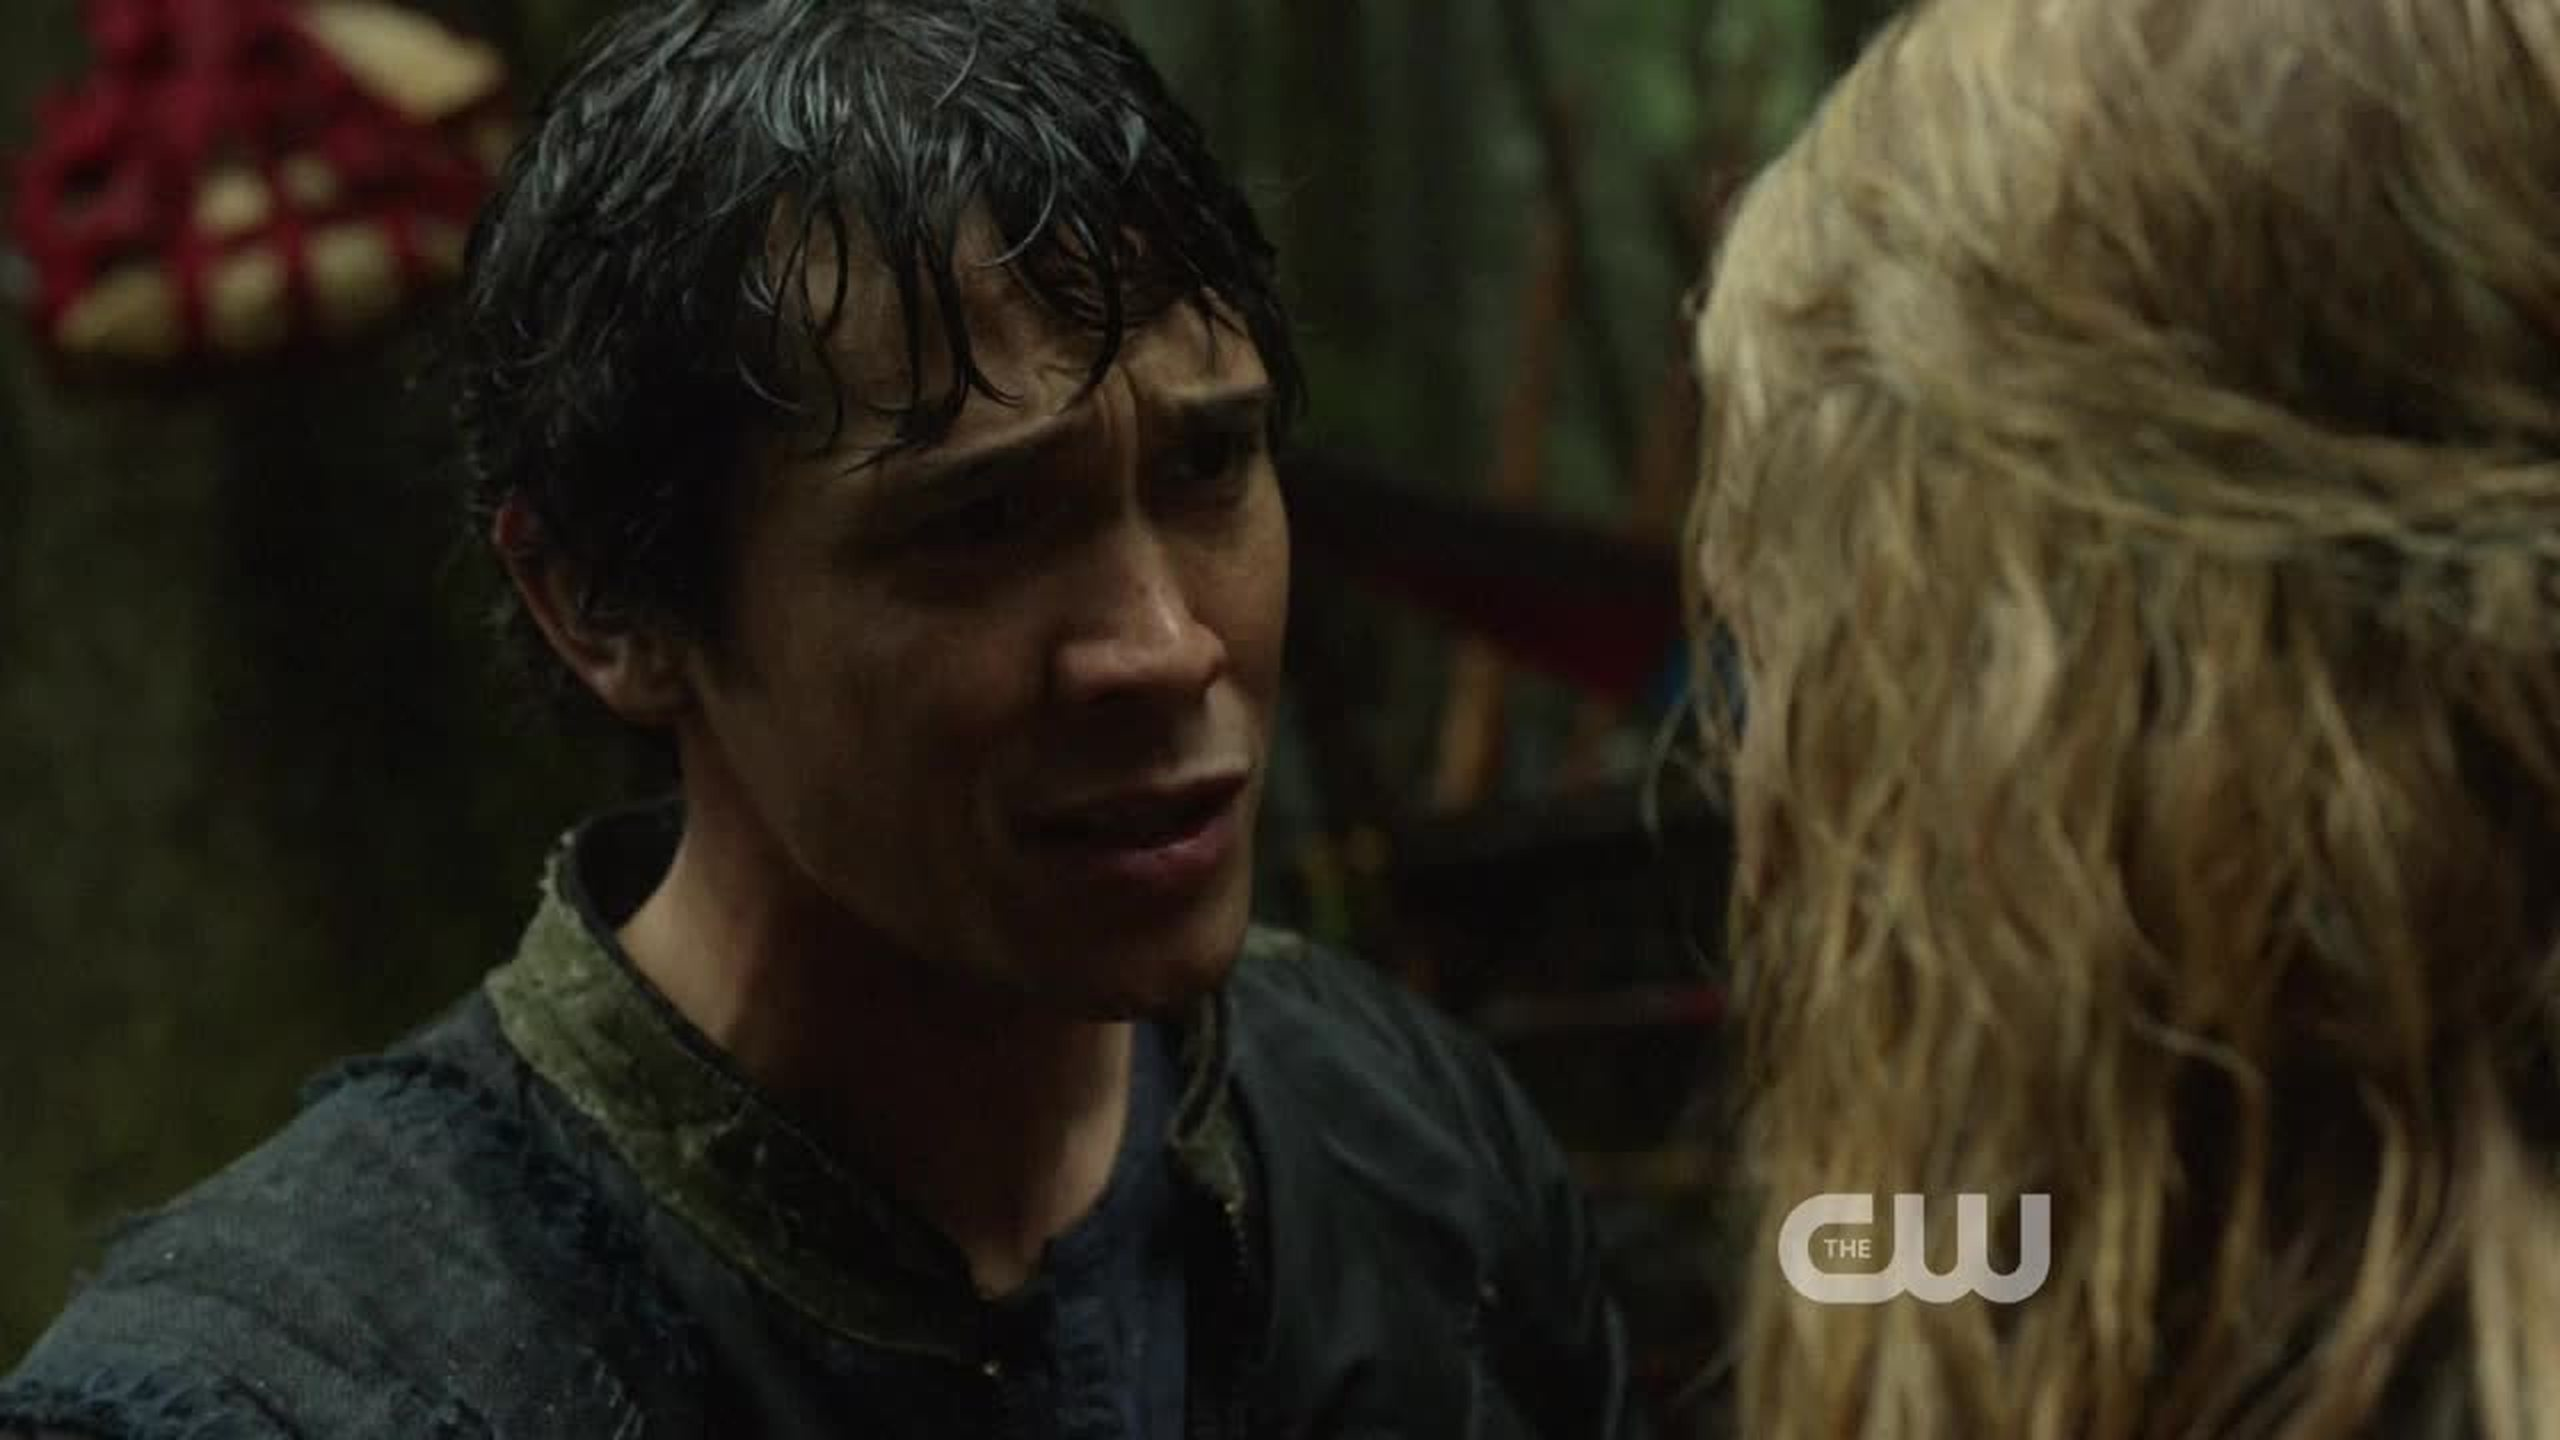 Am I the only one that want Bellamy and Clarke together?